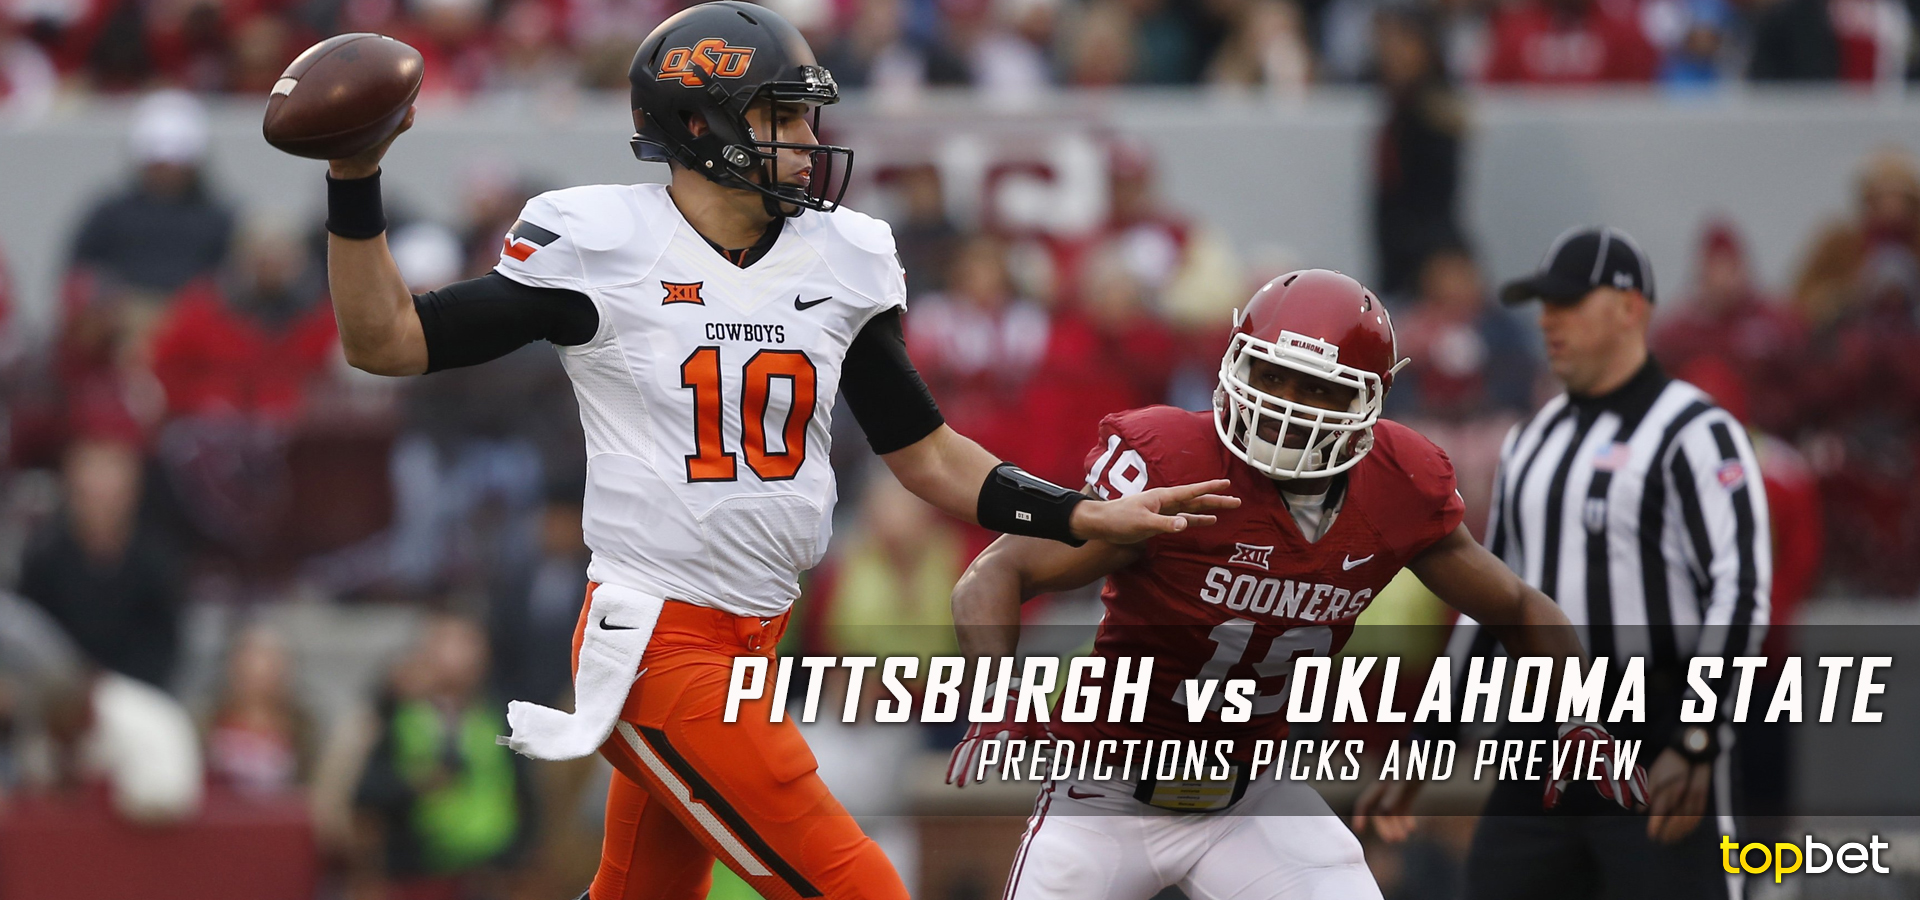 pittsburgh-panthers-vs-oklahoma-state-co